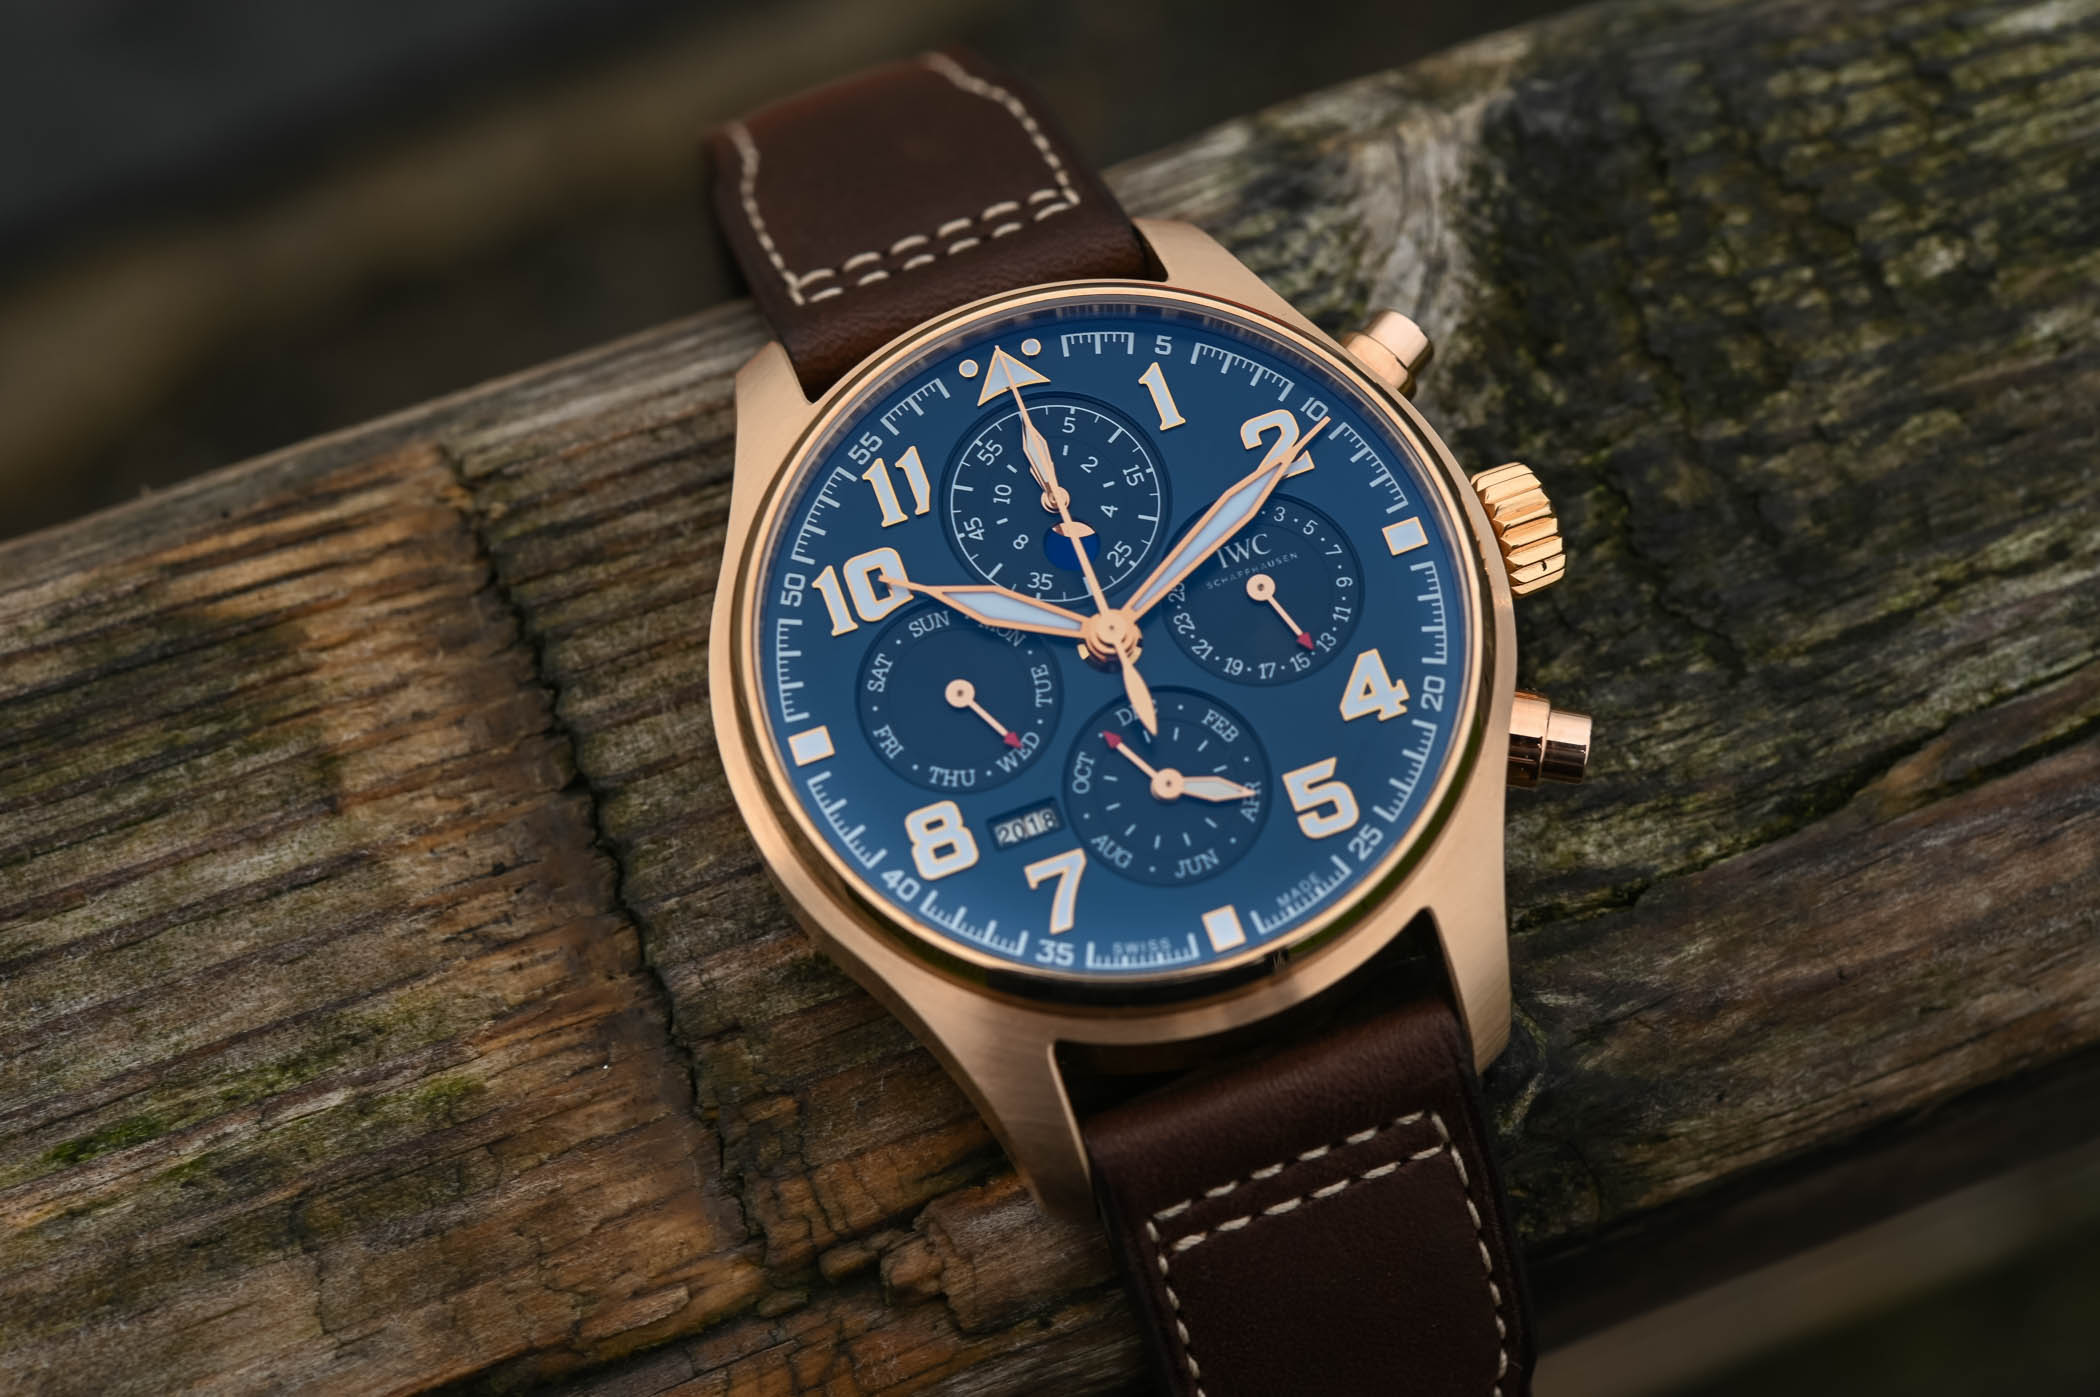 A few more new IWC Spitfires IWC-Pilots-Watch-Perpetual-Calendar-Chronograph-Le-Petit-Prince-IW392202-SIHH-2019-2